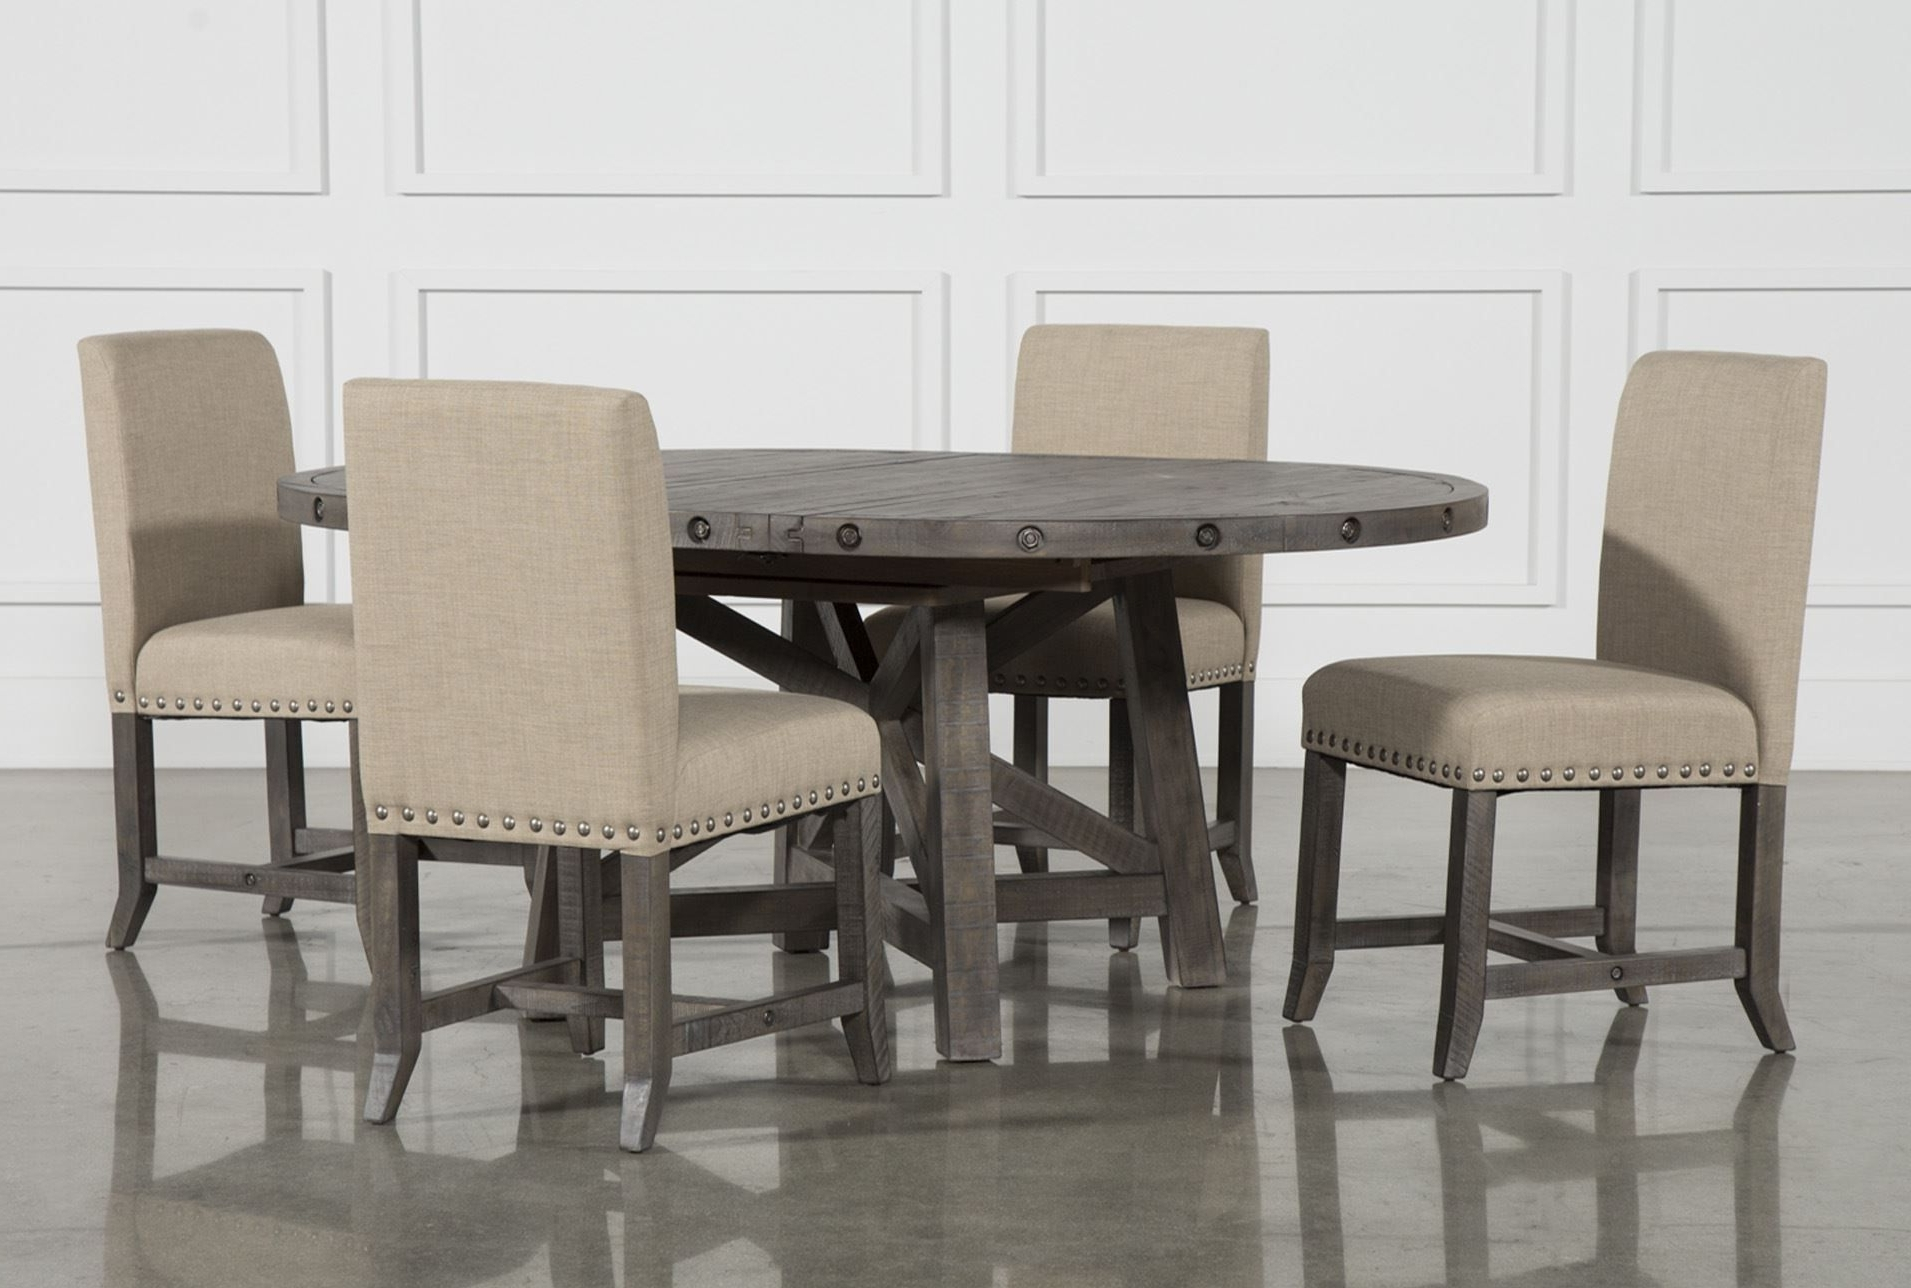 Jaxon Grey 5 Piece Round Extension Dining Set W/upholstered Chairs Inside Most Recently Released Chandler 7 Piece Extension Dining Sets With Wood Side Chairs (View 9 of 25)